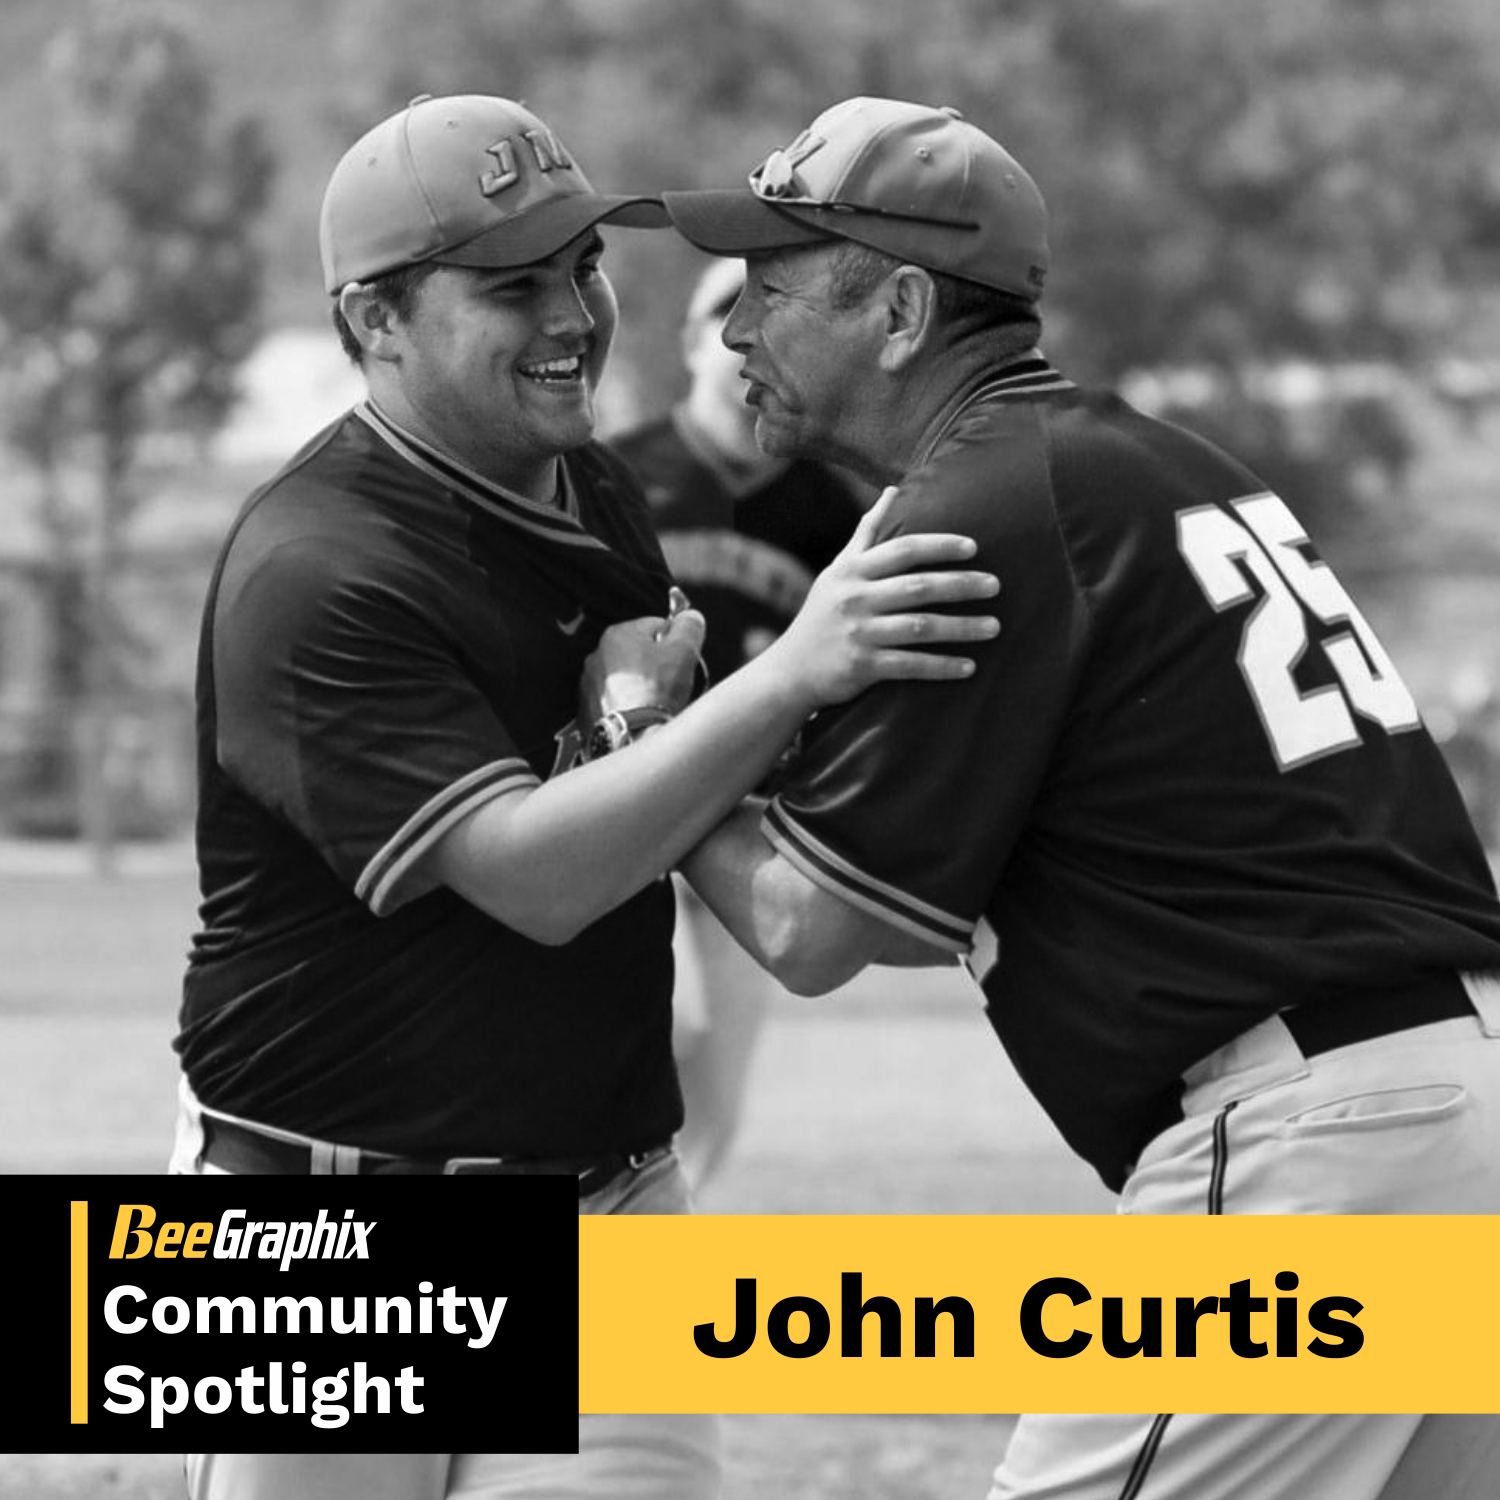 John Curtis - Our next Community Spotlight is our friend, John Curtis. John is a former physical education teacher and current 50 year Head Baseball Coach at Jefferson-Morgan High School. We have known and worked with John for years and we want to recognize him for his great contribution to the Jefferson-Morgan Community. When people go out of their way to make our community a better place, it should not go unnoticed and we would like to thank John for his dedication and hard work! John, we tip our hat to you. Read more about his amazing career as a baseball coach and educator here:https://observer-reporter.com/columns/johnsacco/j-m-s-curtis-still-getting-it-done-in-th/article_ac1ba2d8-596e-11e9-b455-4f3cd45c4333.html?fbclid=IwAR1K1psb-V5QOuDYoU-XjUq9m4CU50od-6XTSiMHOkyNrEvTZlmAYP0mb6k